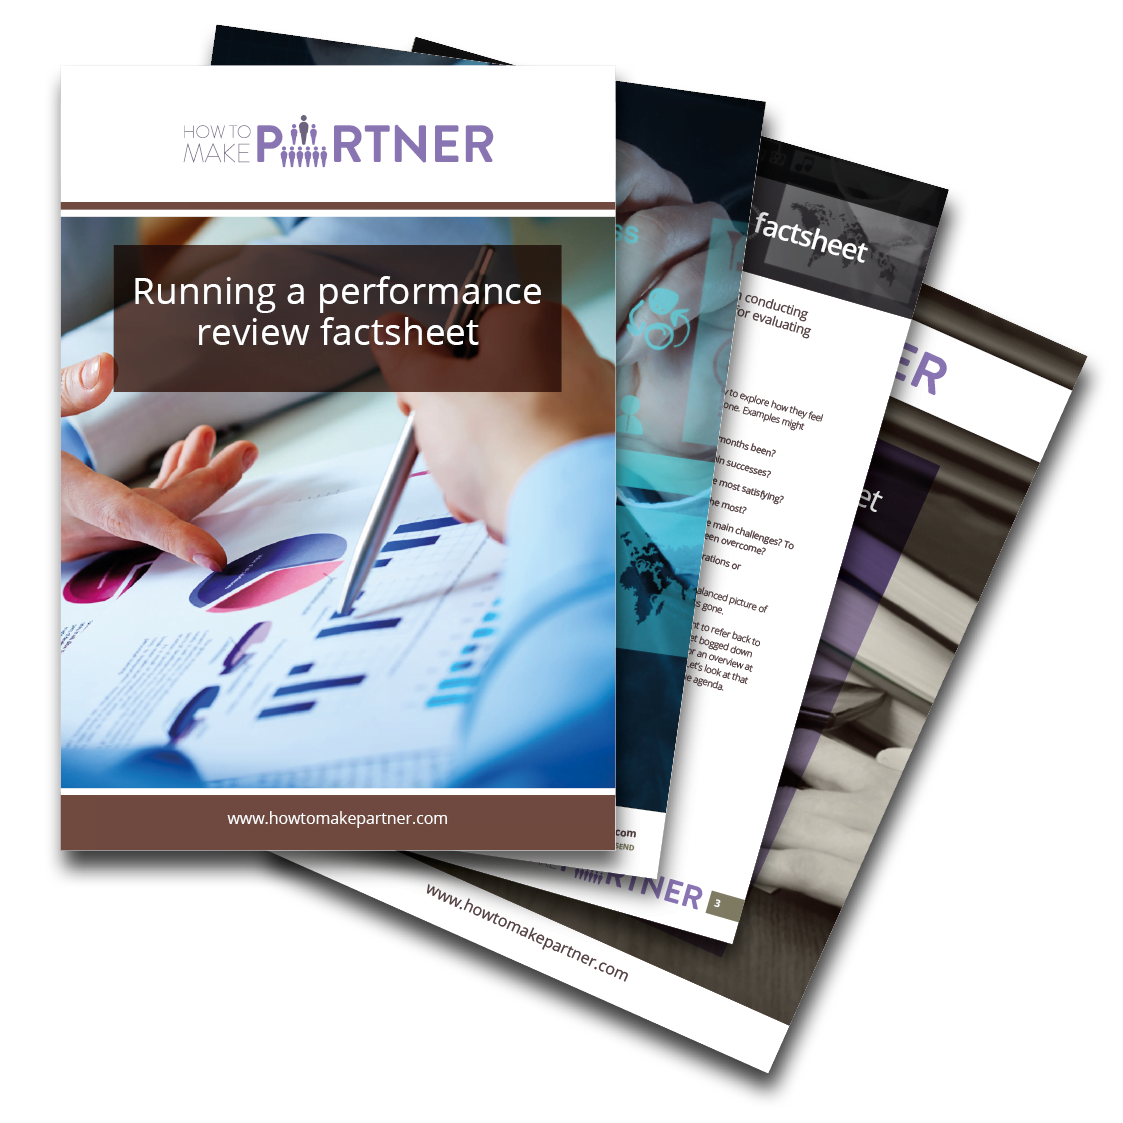 Factsheet: Running a performance review